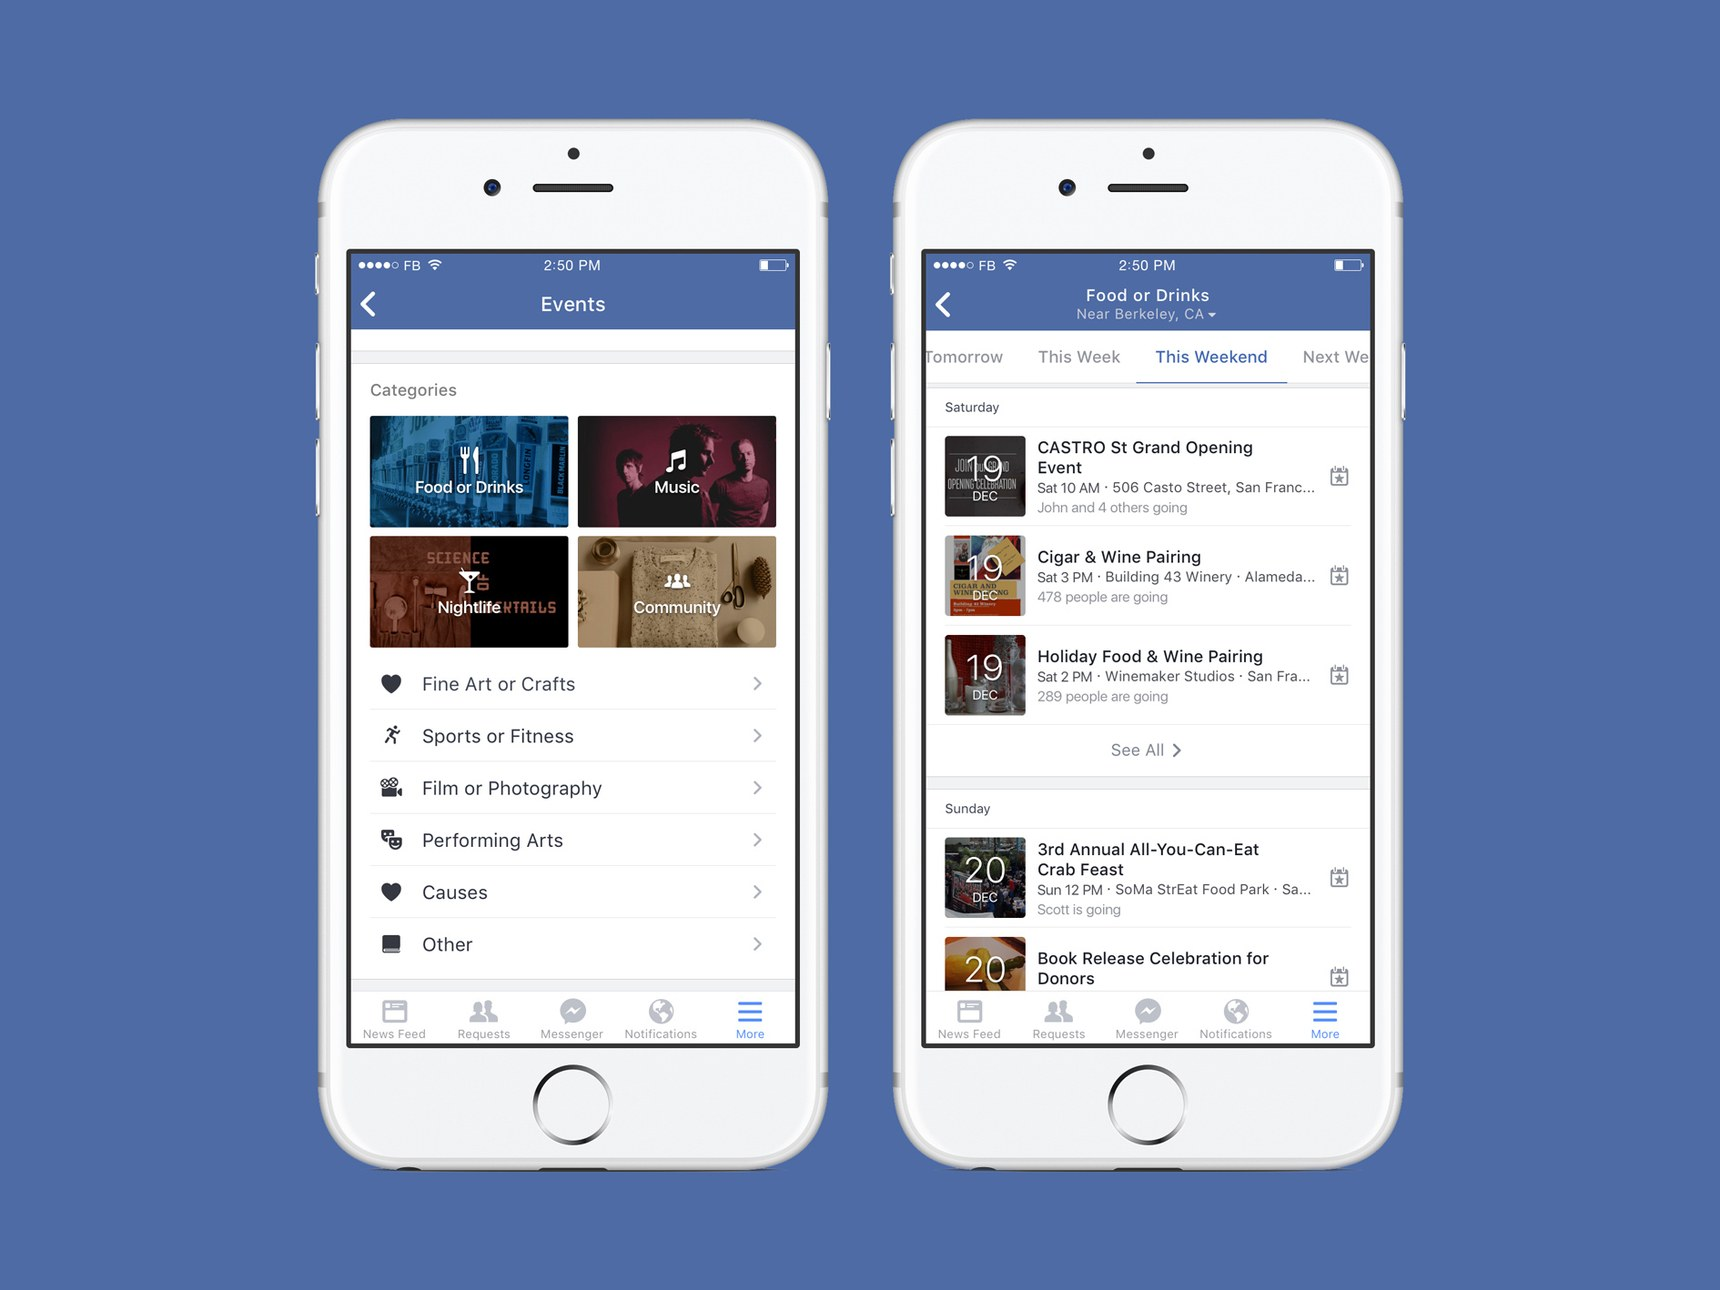 Facebook-Event-Page Event Planning: Using Facebook to Promote Your Event